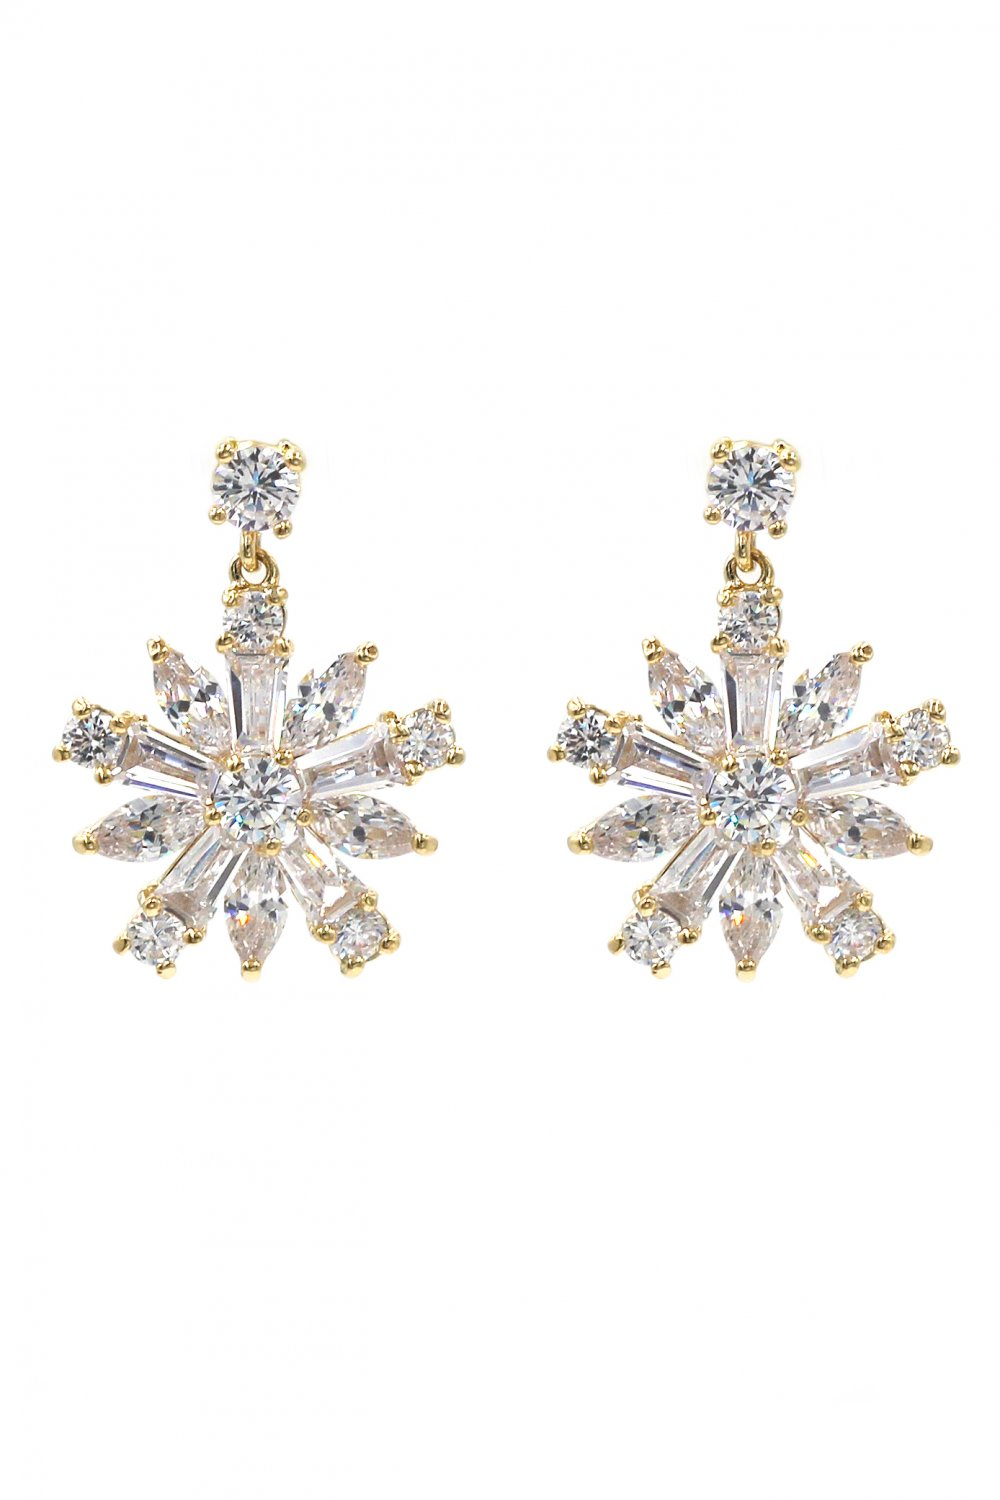 Fashion sparkling crystal gold earrings